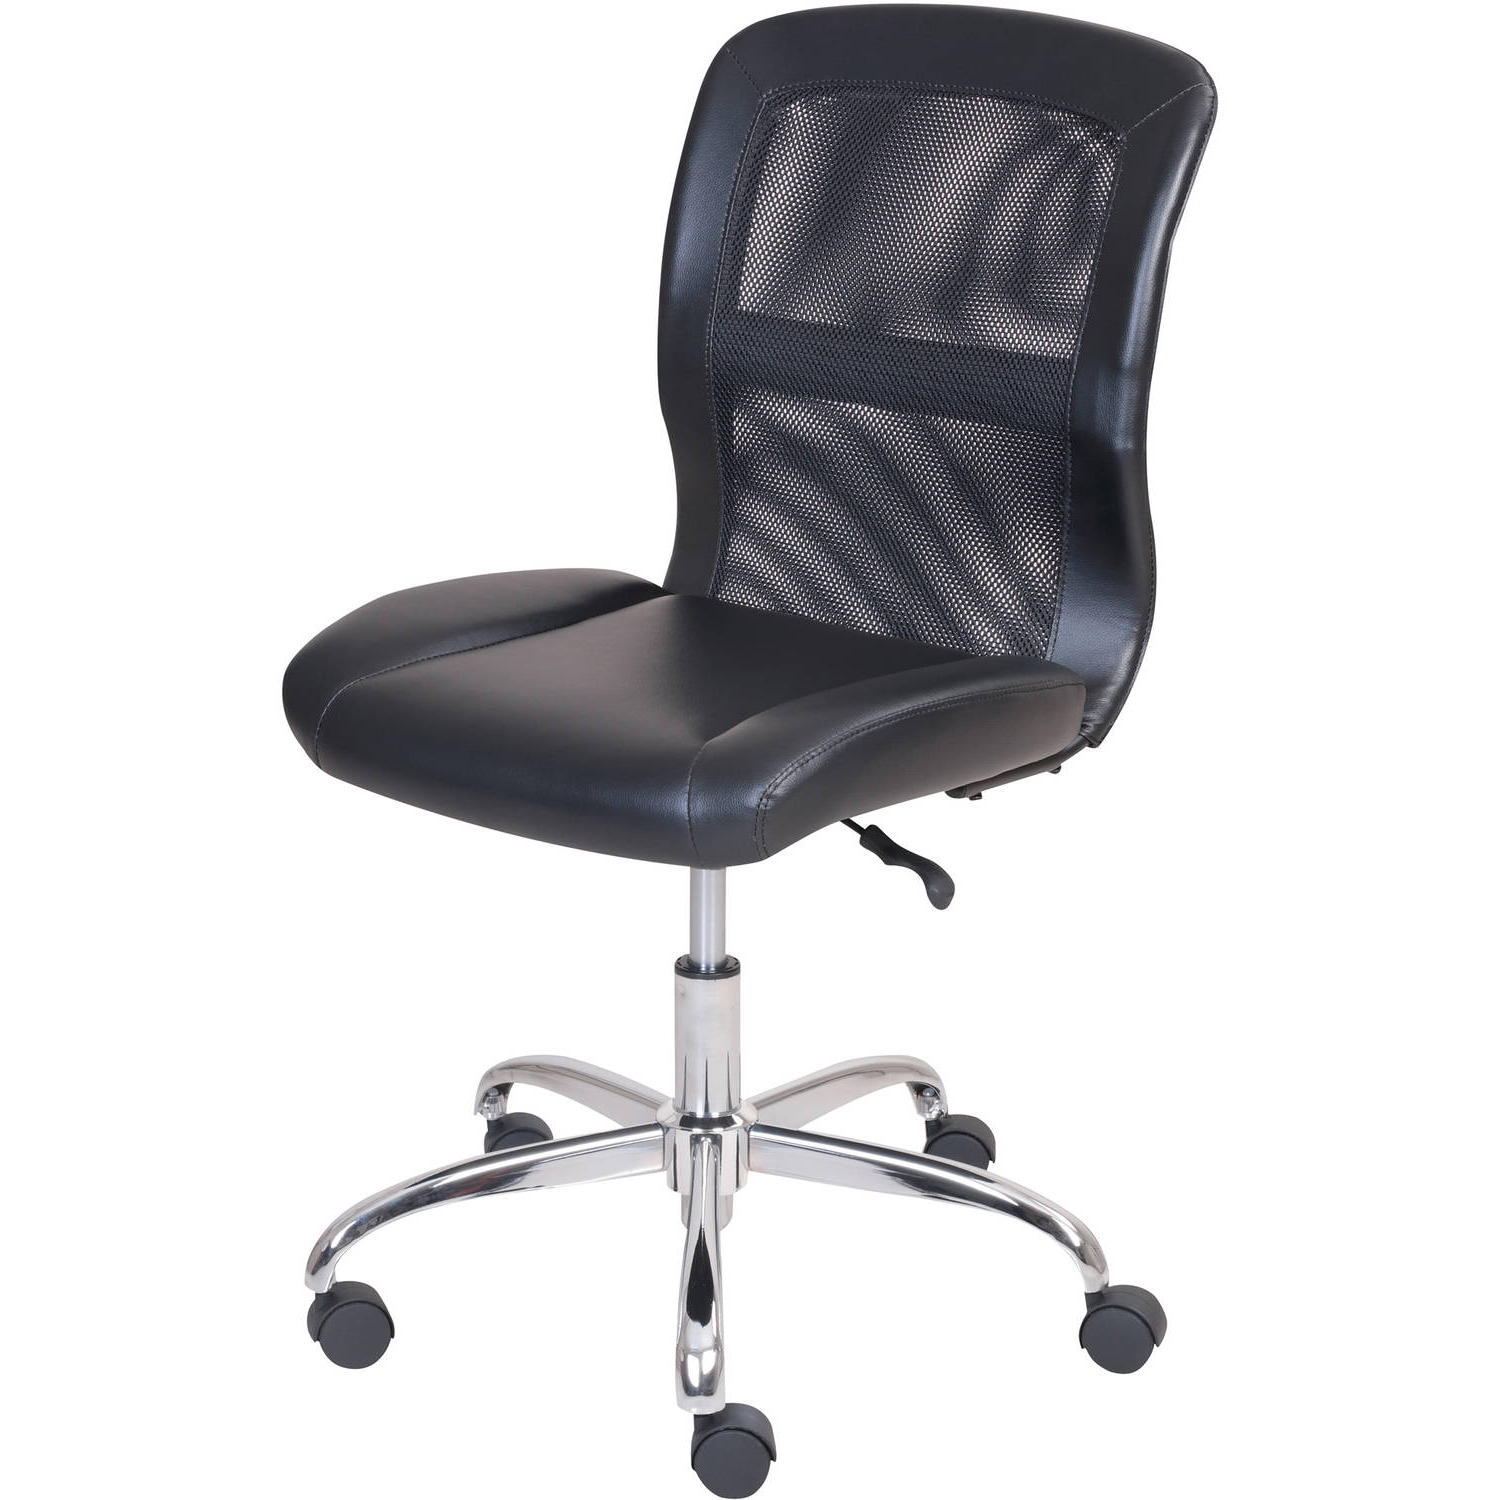 Famous Sofa Desk Chairs Intended For Furniture: Accessible Walmart Desk Chairs For Good Office Furniture (Gallery 7 of 20)